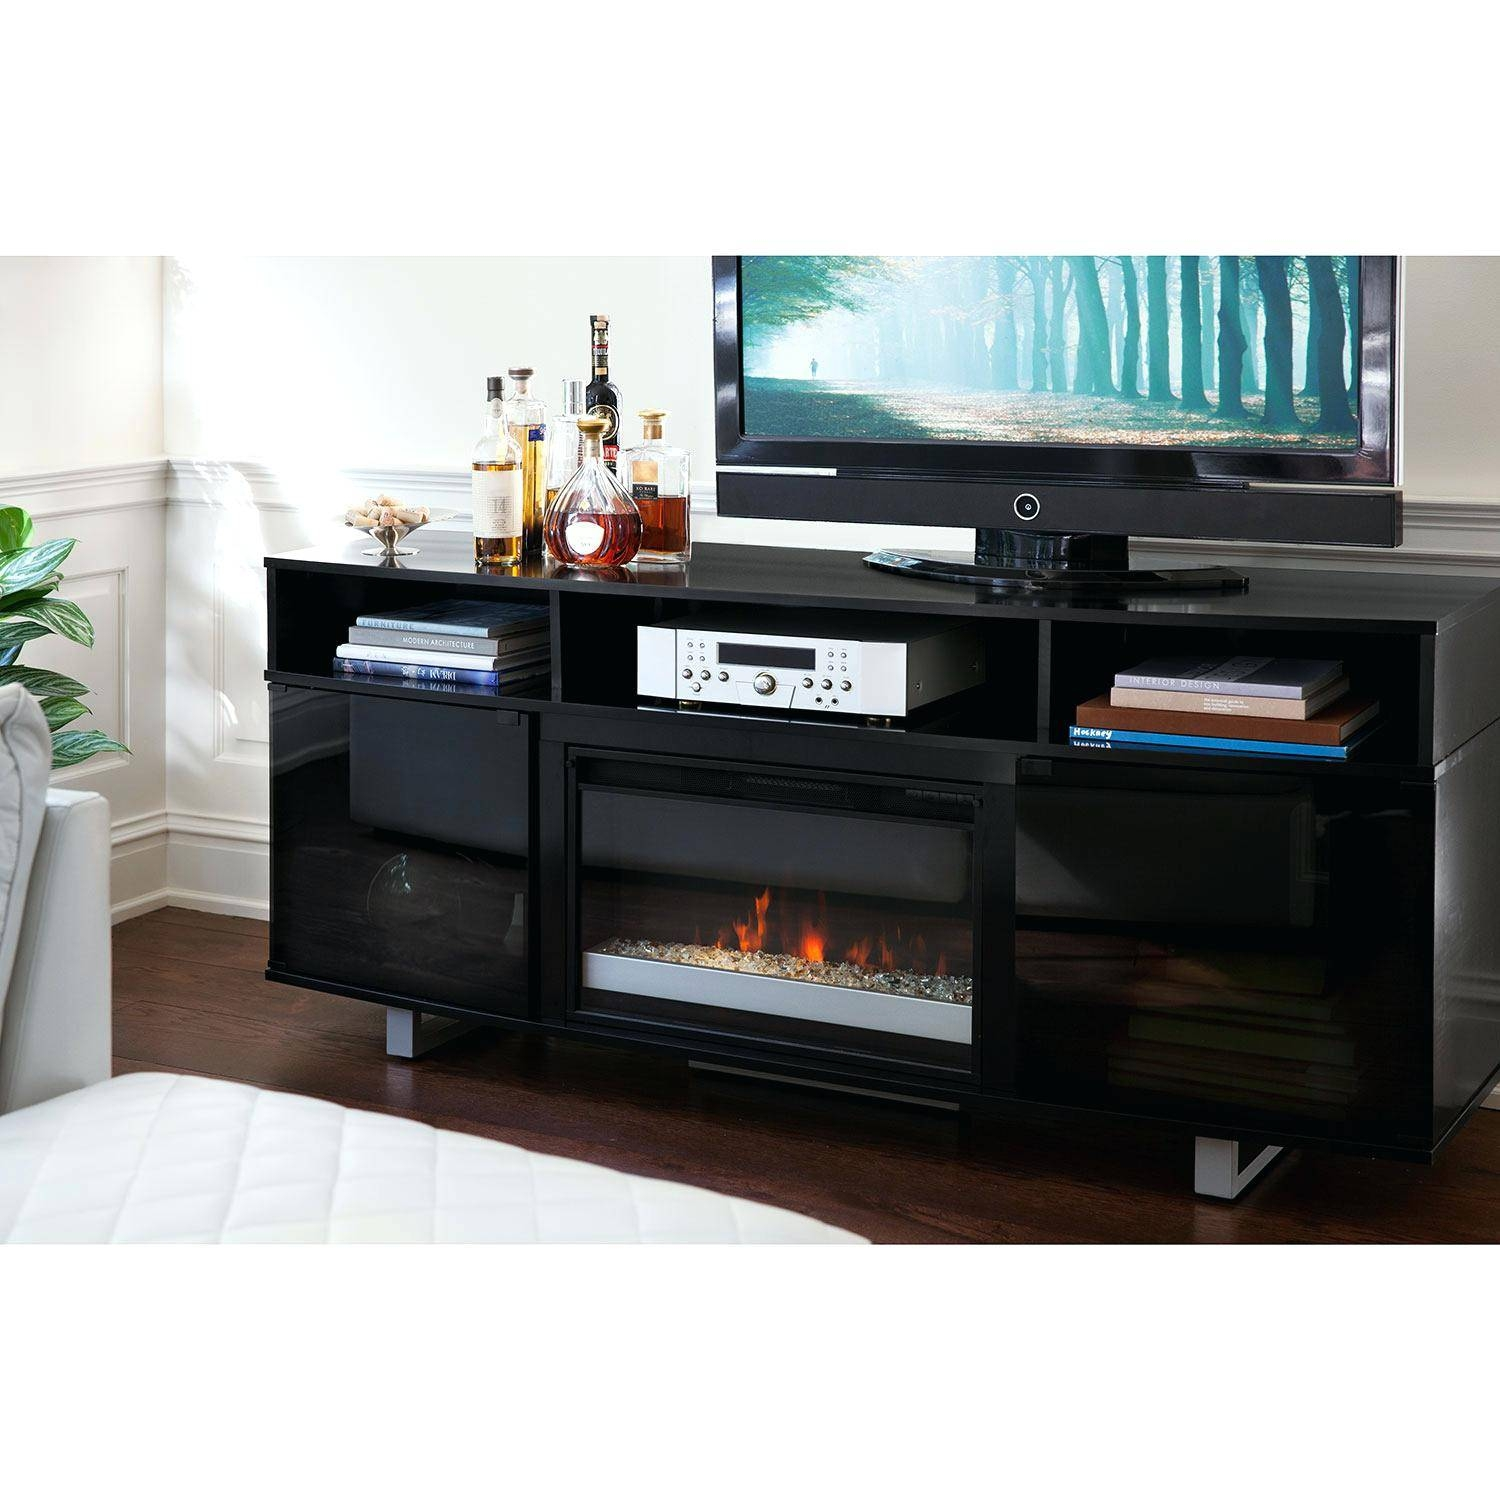 Tv Stand : Tv Stand Furniture Compact Jm Tv027 Modern Tv Stand In Regarding Shiny Black Tv Stands (View 14 of 15)